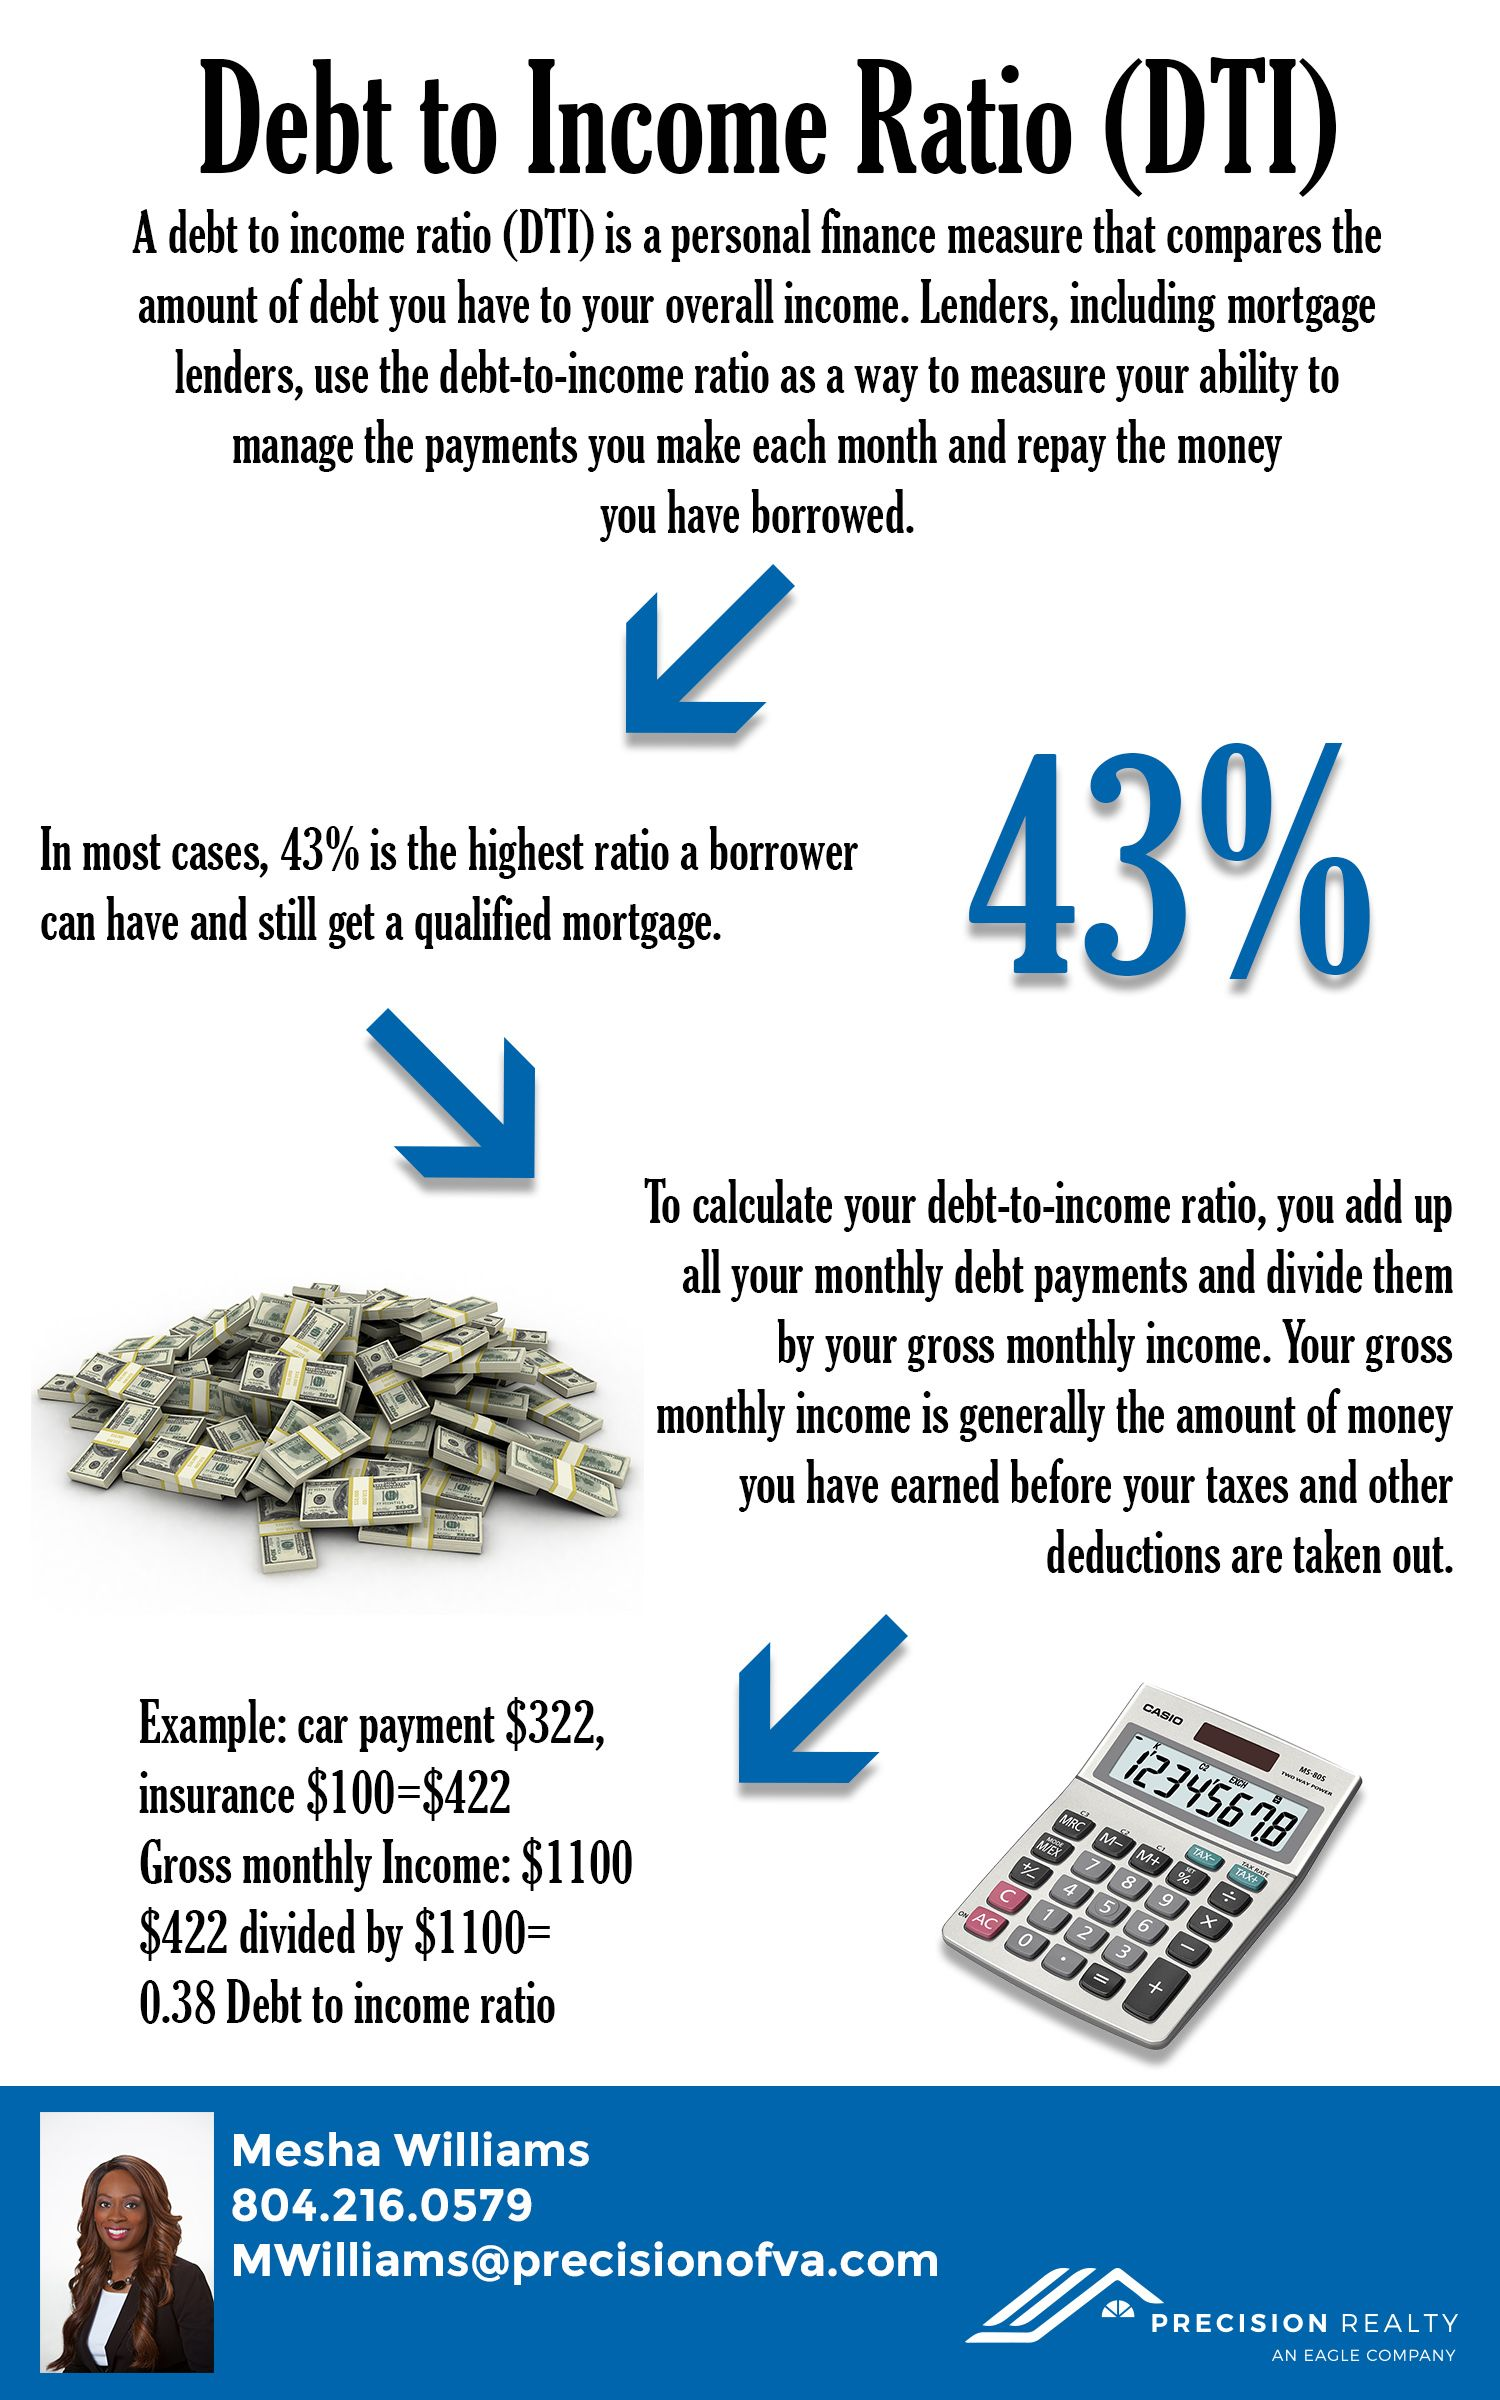 Take The Time To Calculate Your Debt To Income Ratio